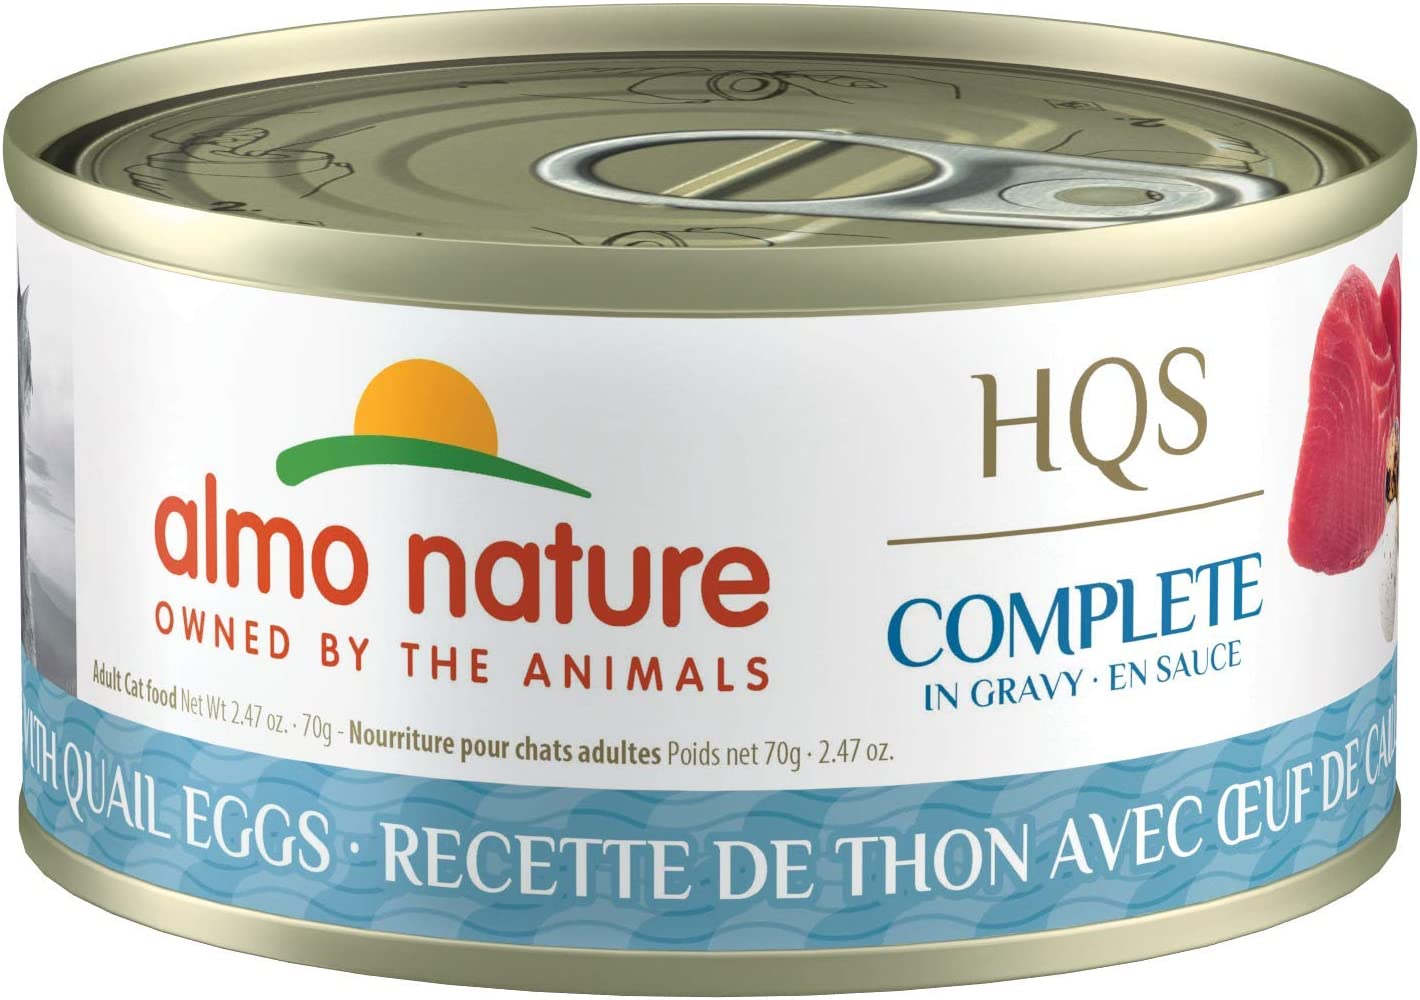 Almo Nature HQS Complete In Gravy, Grain Free, Adult Cat Canned Wet Food, Flaked (Pack of 24 x 2.47 oz/70g)